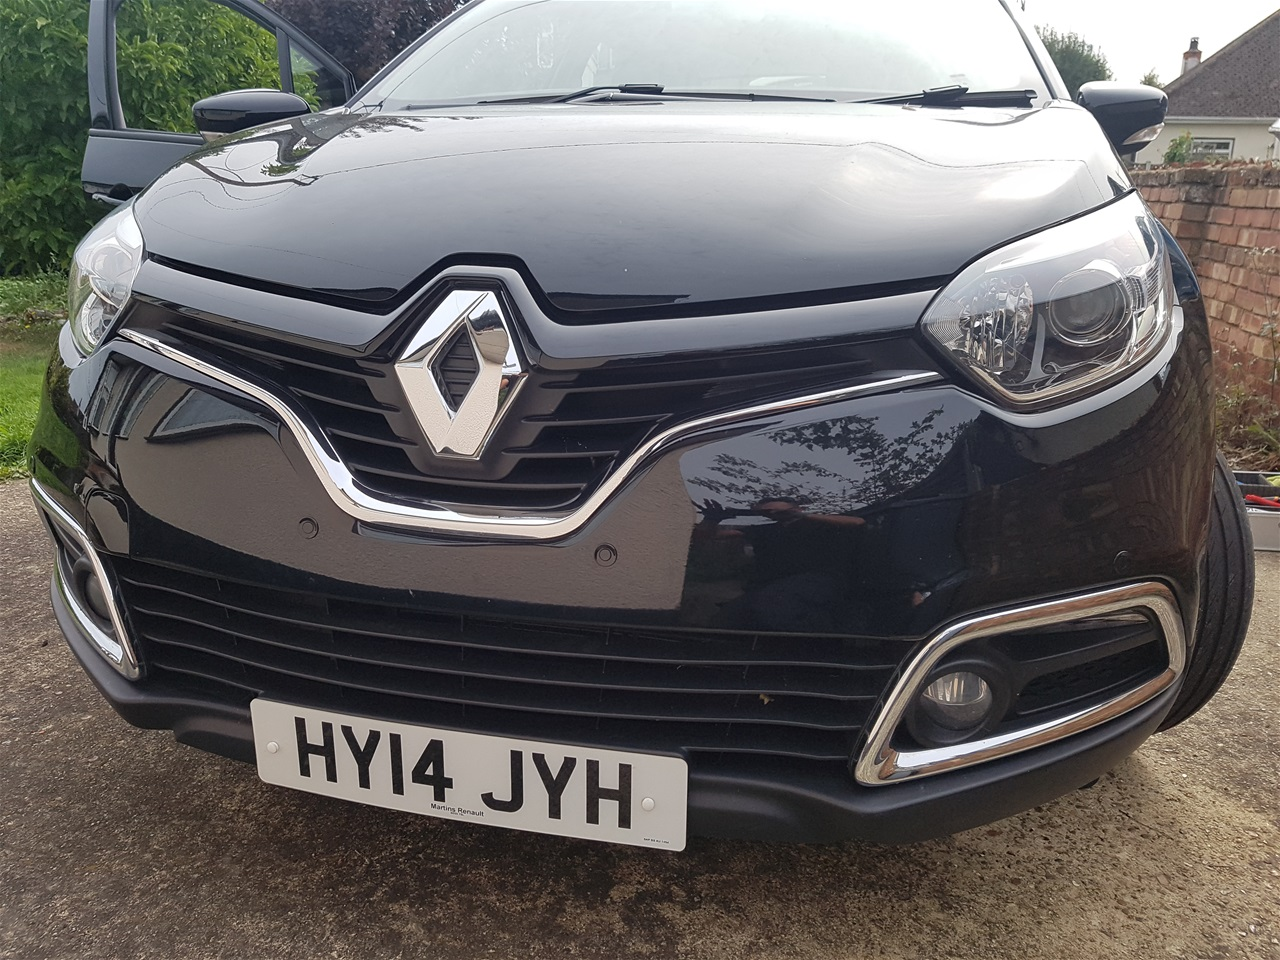 Renault Captur front parking sensors